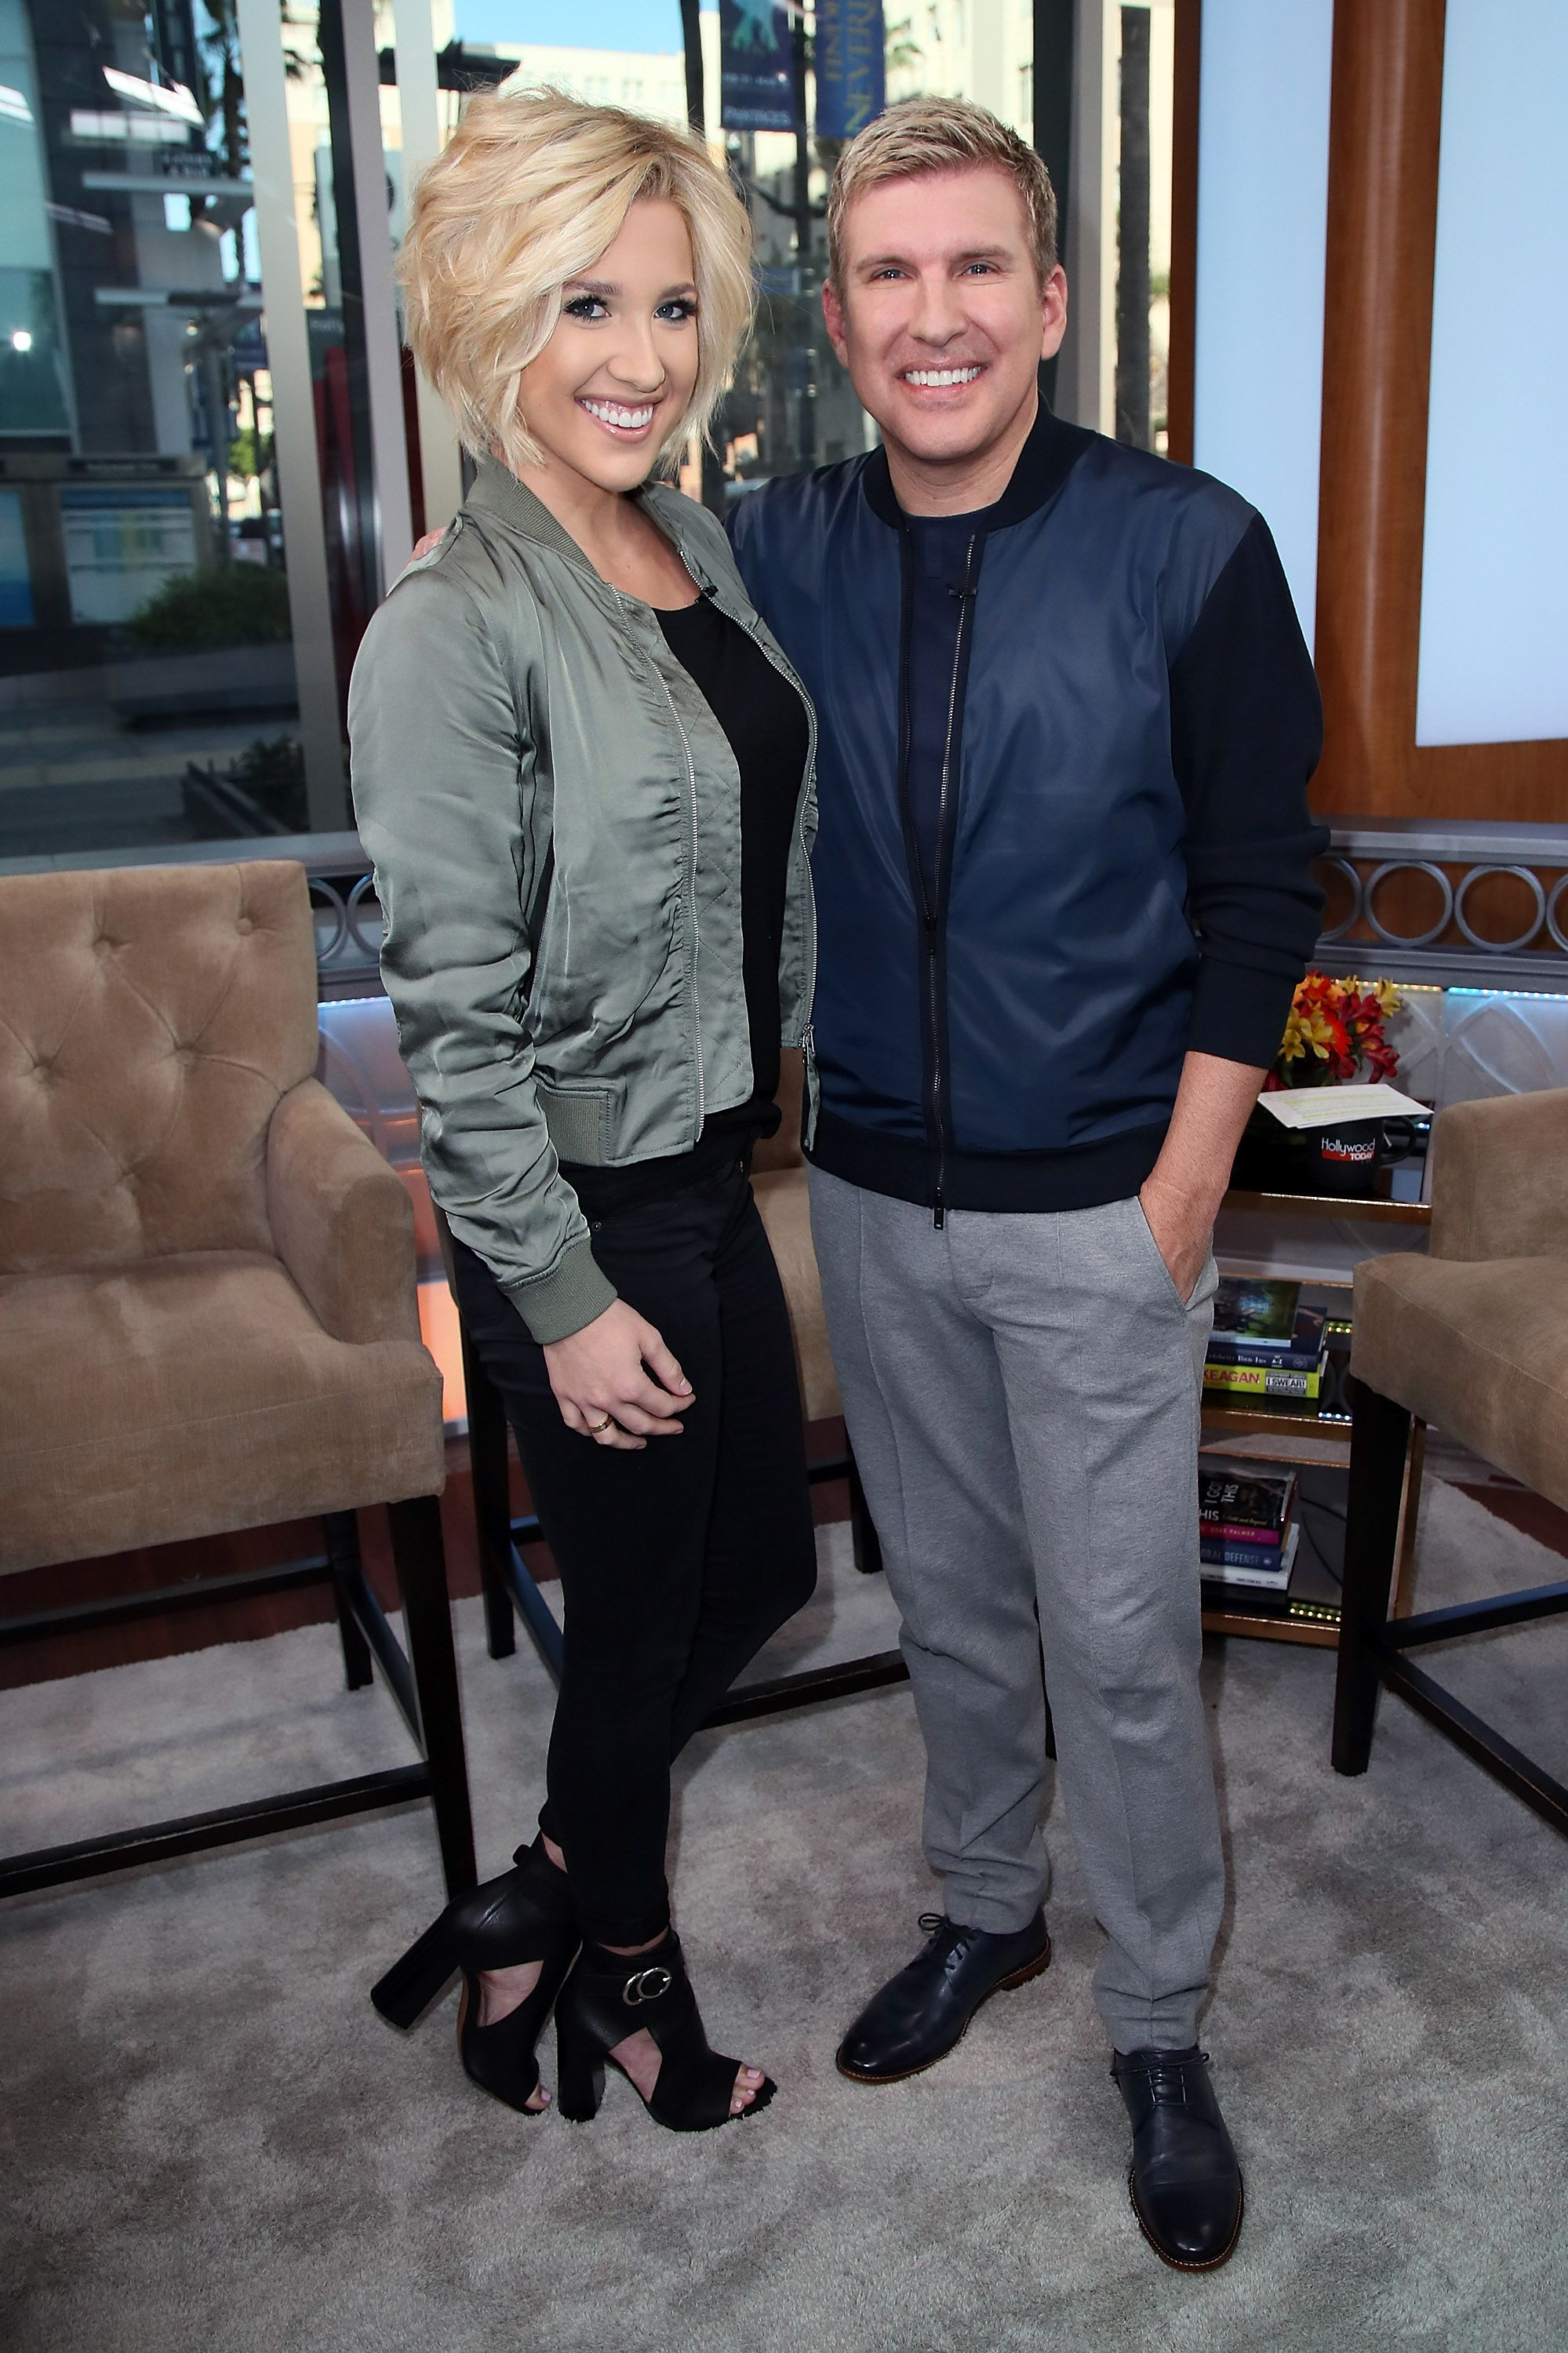 Savannah and Todd Chrisley visit Hollywood Today Live at W Hollywood on February 24, 2017, inCalifornia | Photo:David Livingston/Getty Images